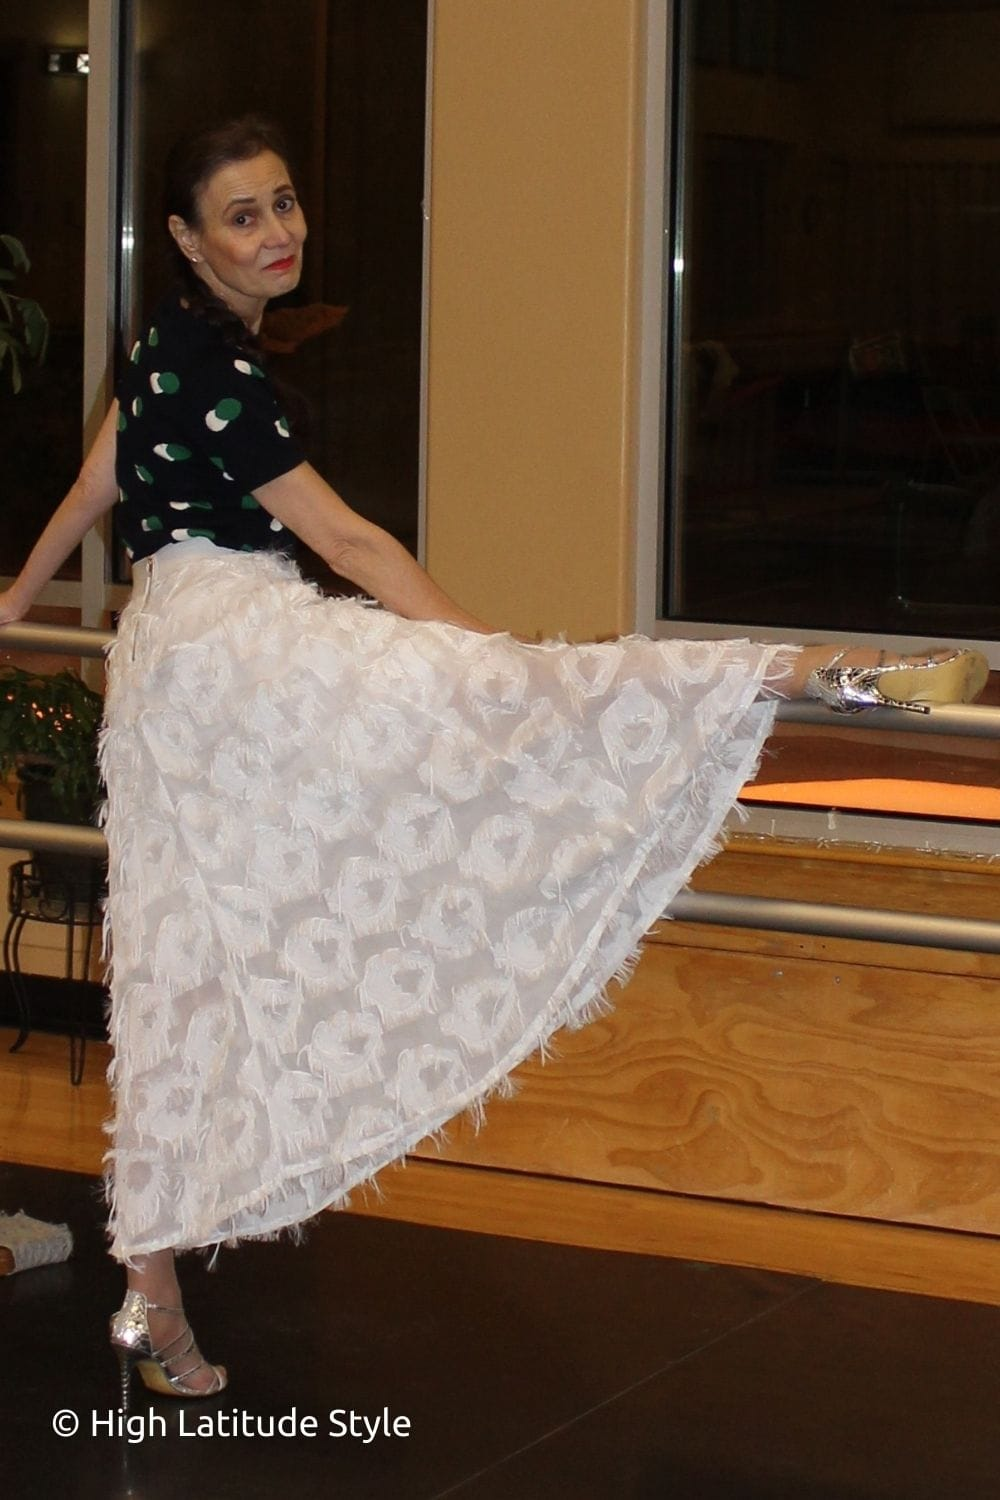 dancer stretching on bar in white skirt, polkadot top, silver dance shoes